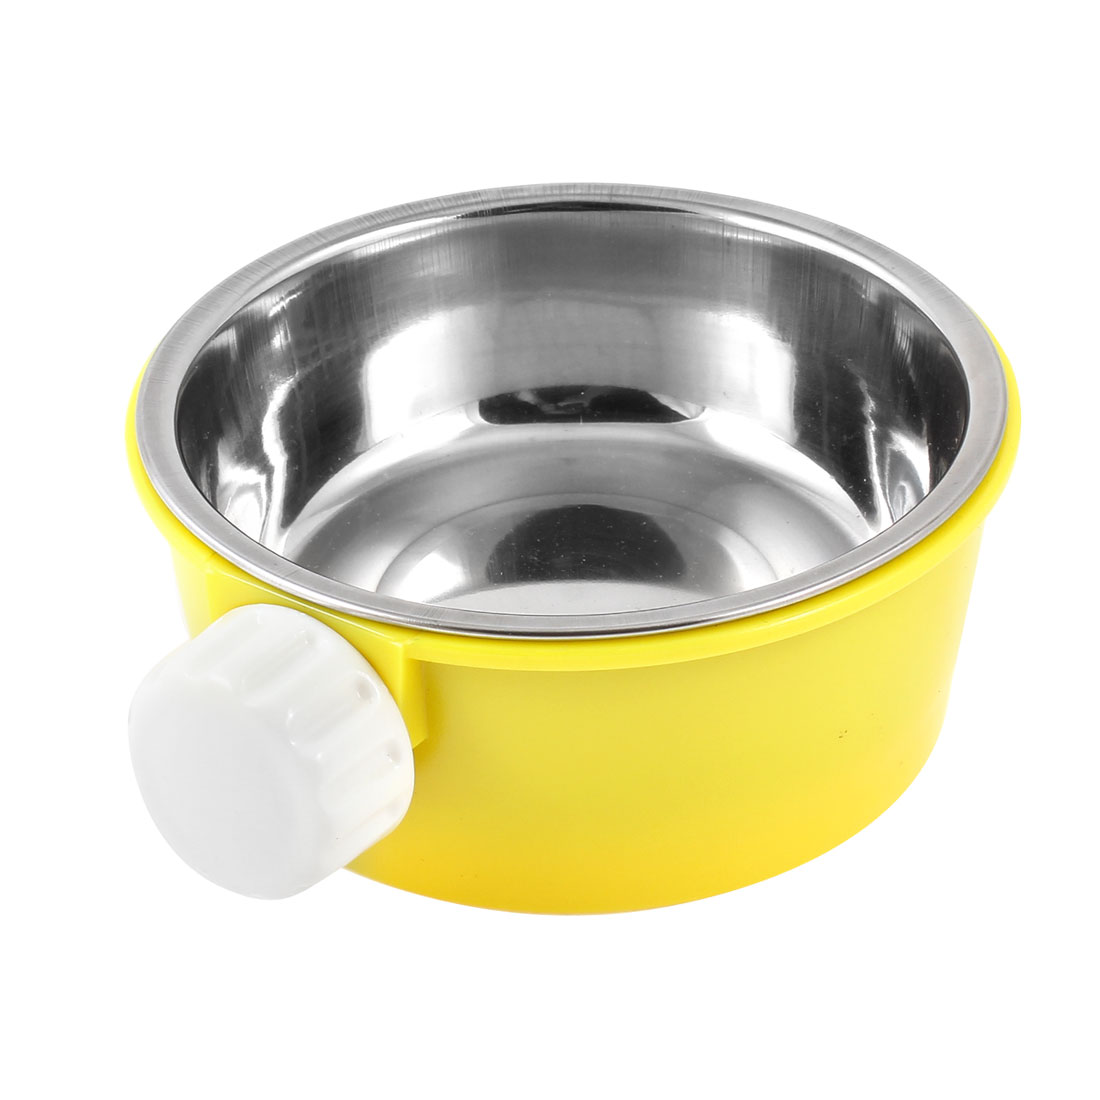 Yellow Food Water Feed Feeder Fixed Bowl Dish 2 in 1 for Pet Cat Dog imitated rabbit